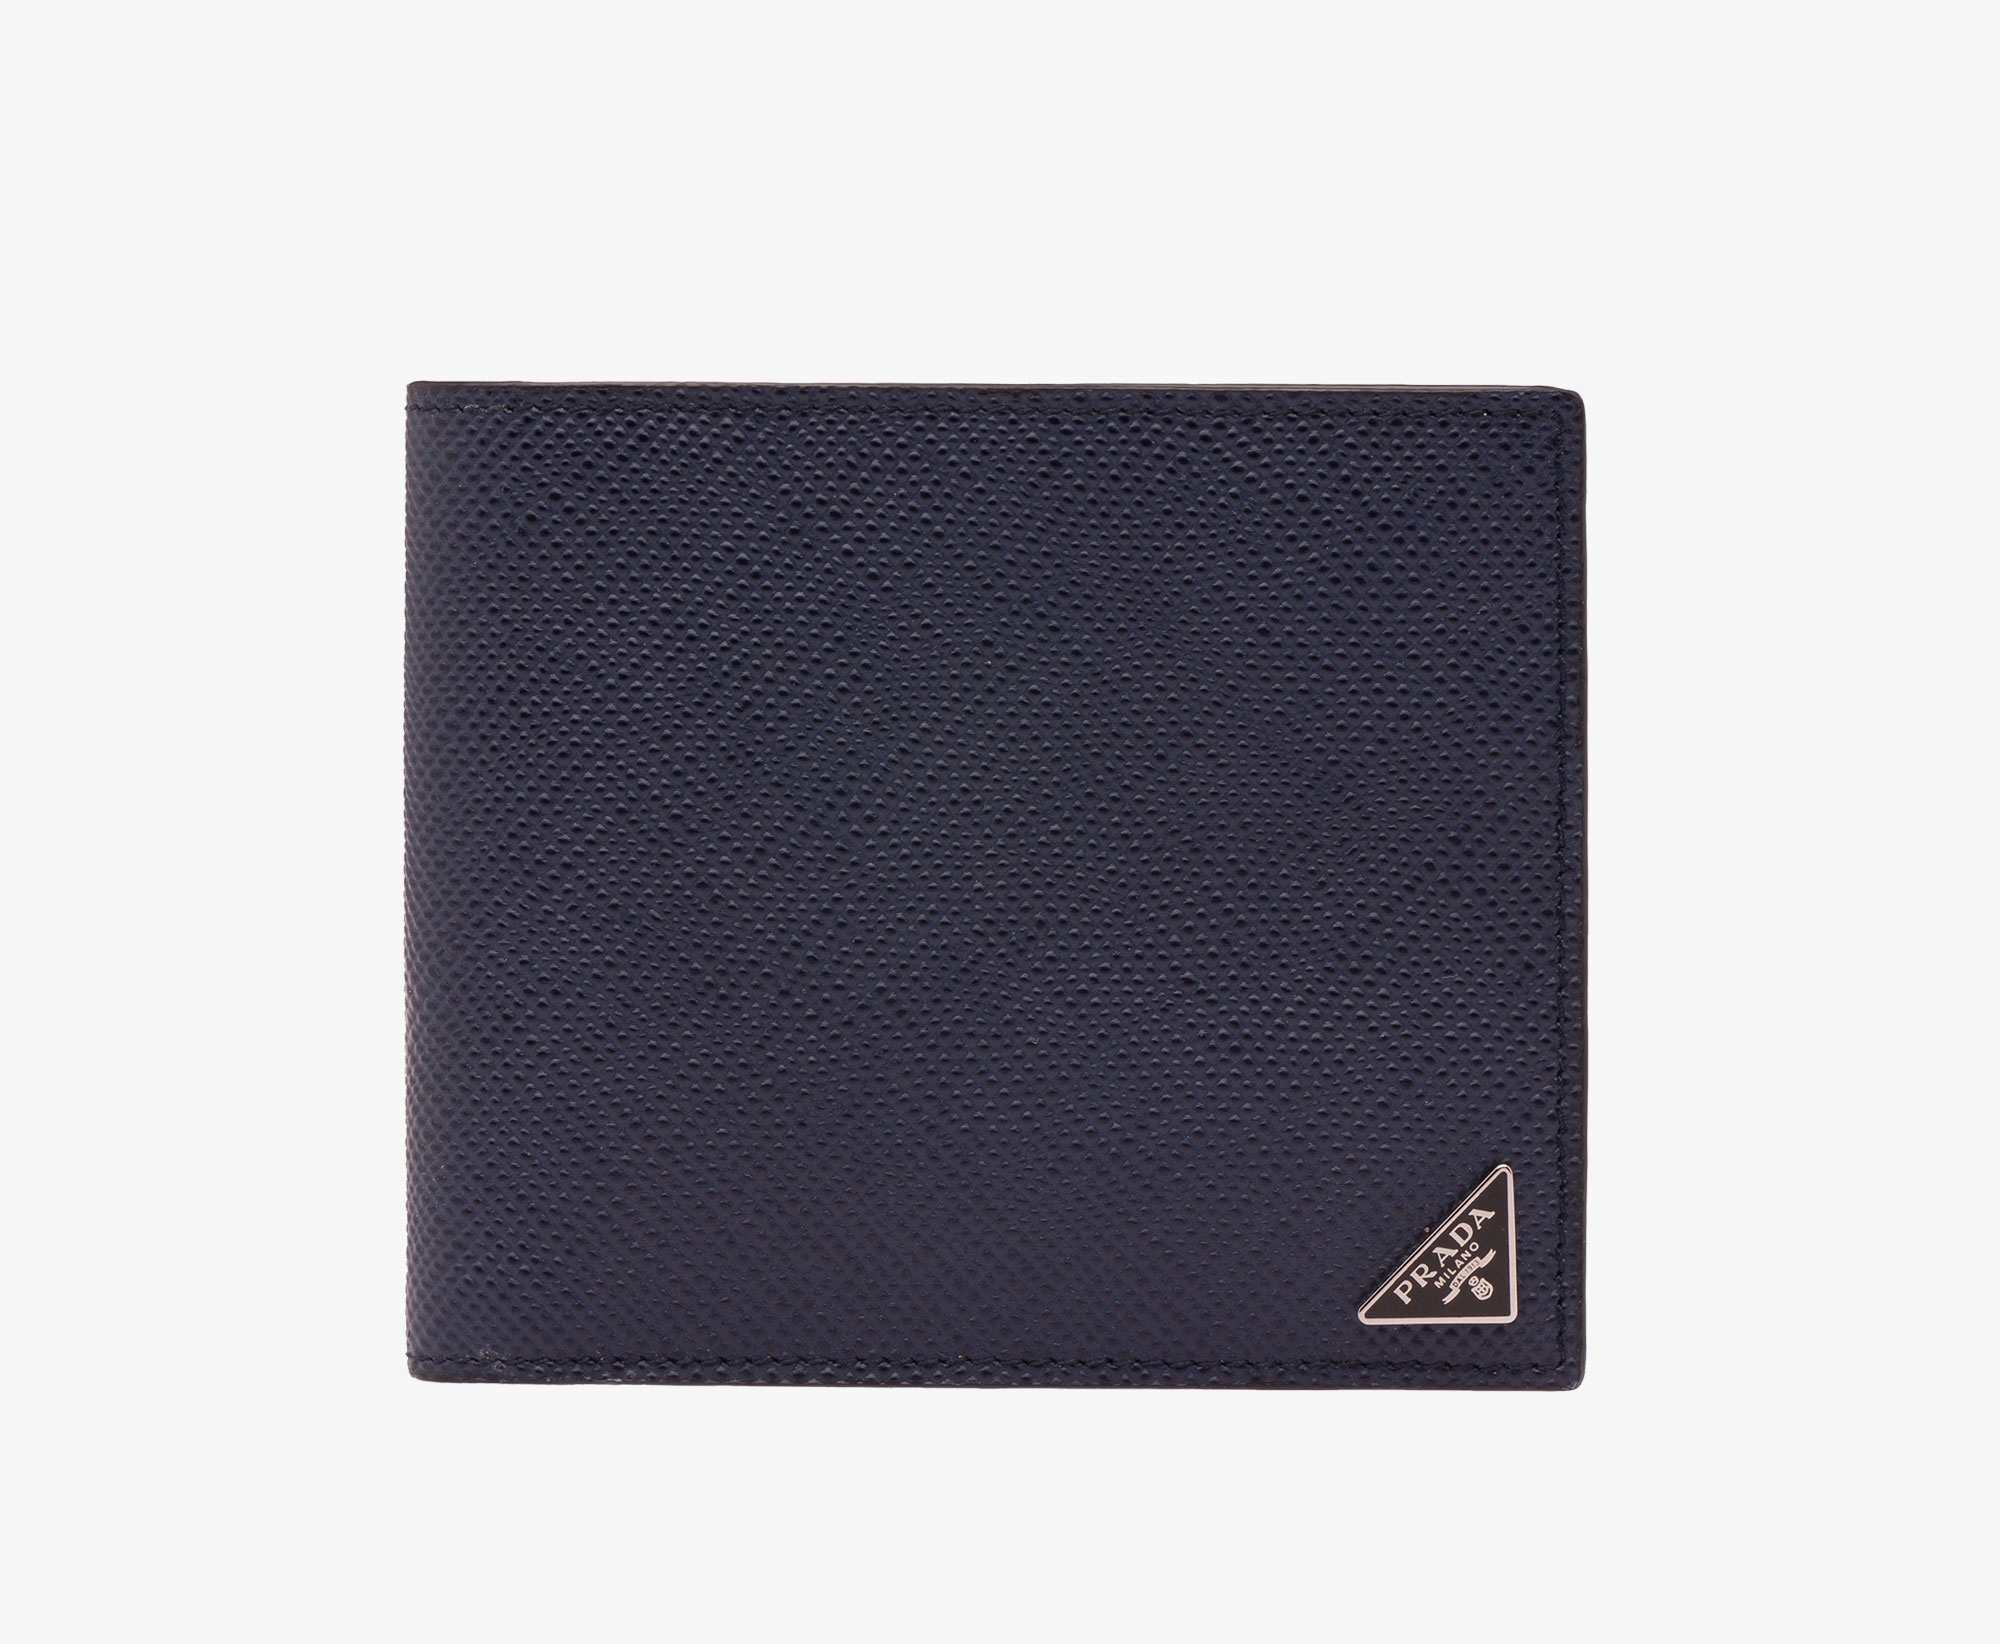 Buy Prada Men Wallet Baltic Blue [2MO513 2E3E F0216], Price ... - prada wallet baltic blue